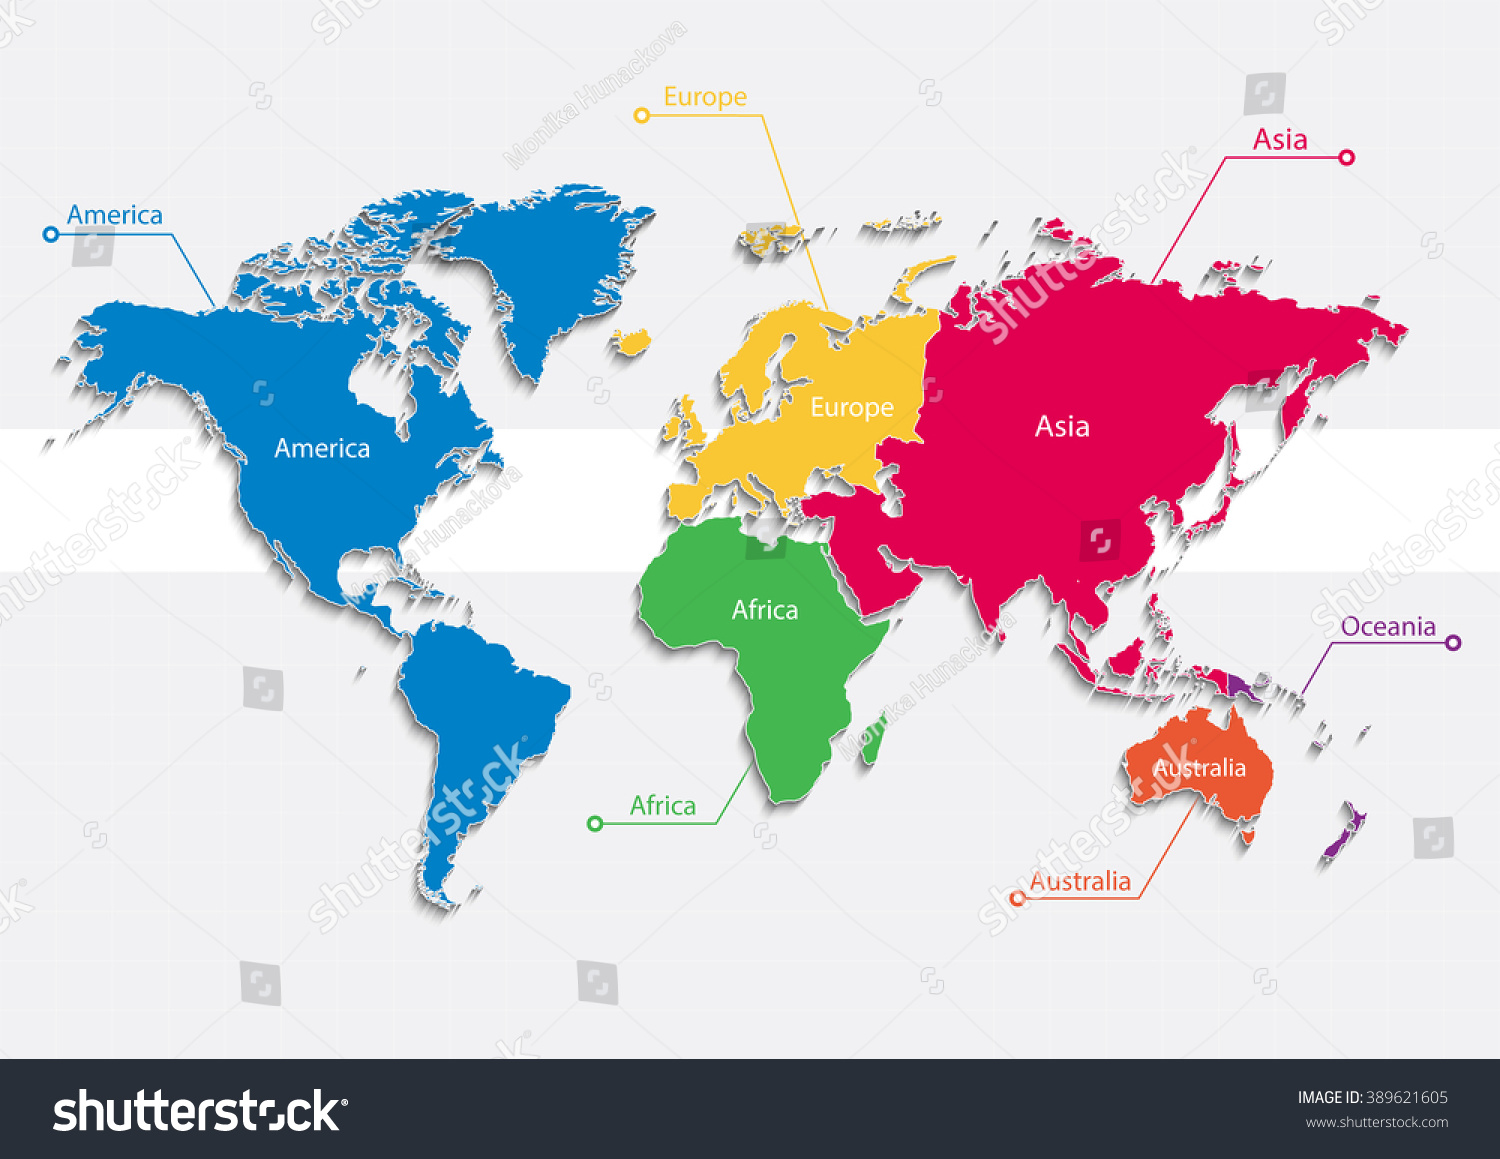 World map europe asia maps download world map map europe world map continents colors vector individual stock vector gumiabroncs Images